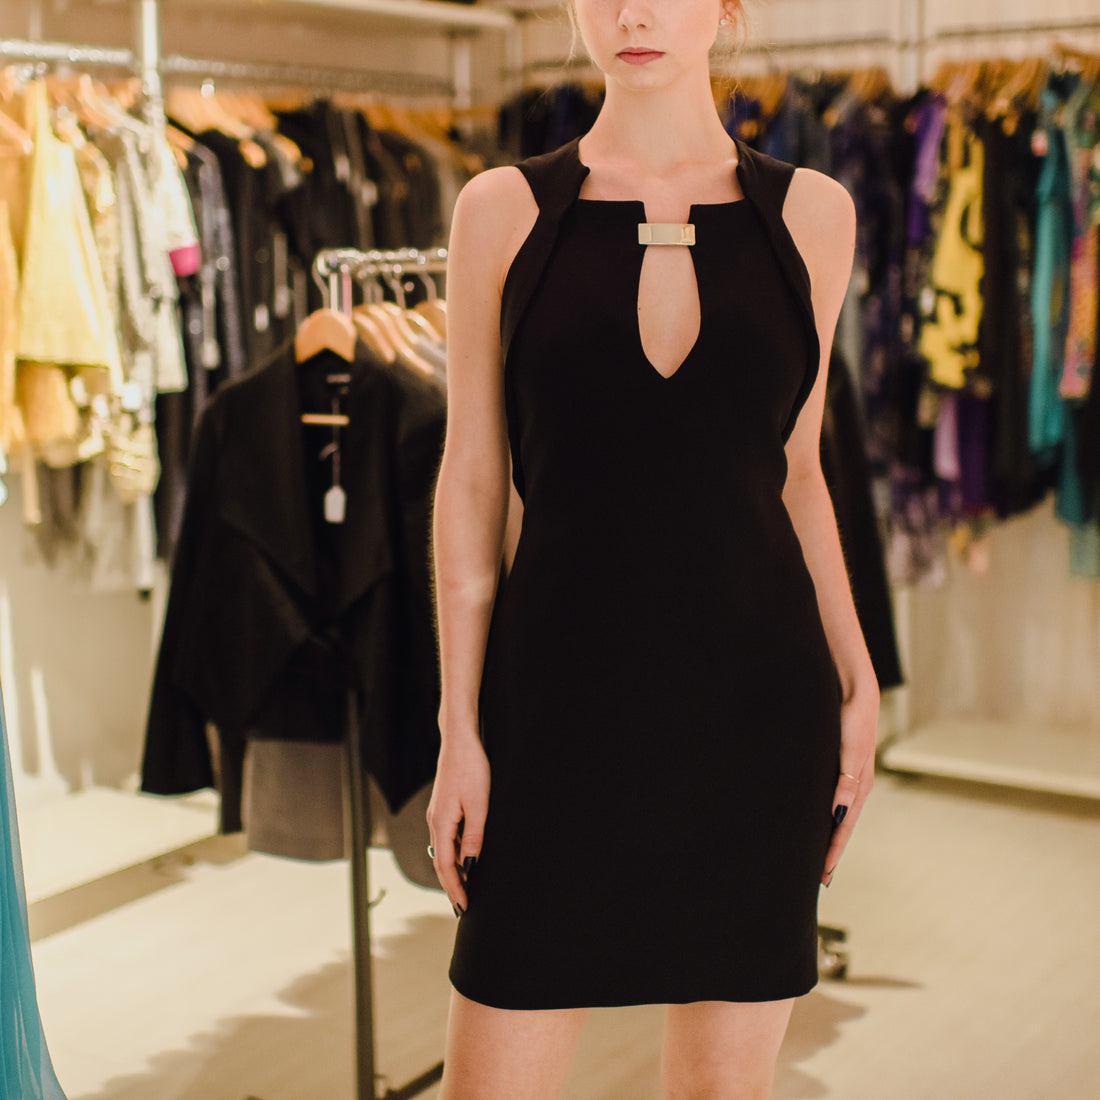 Gucci Black Silk Sleeveless Dress with Gold Metal Plaque at Neck